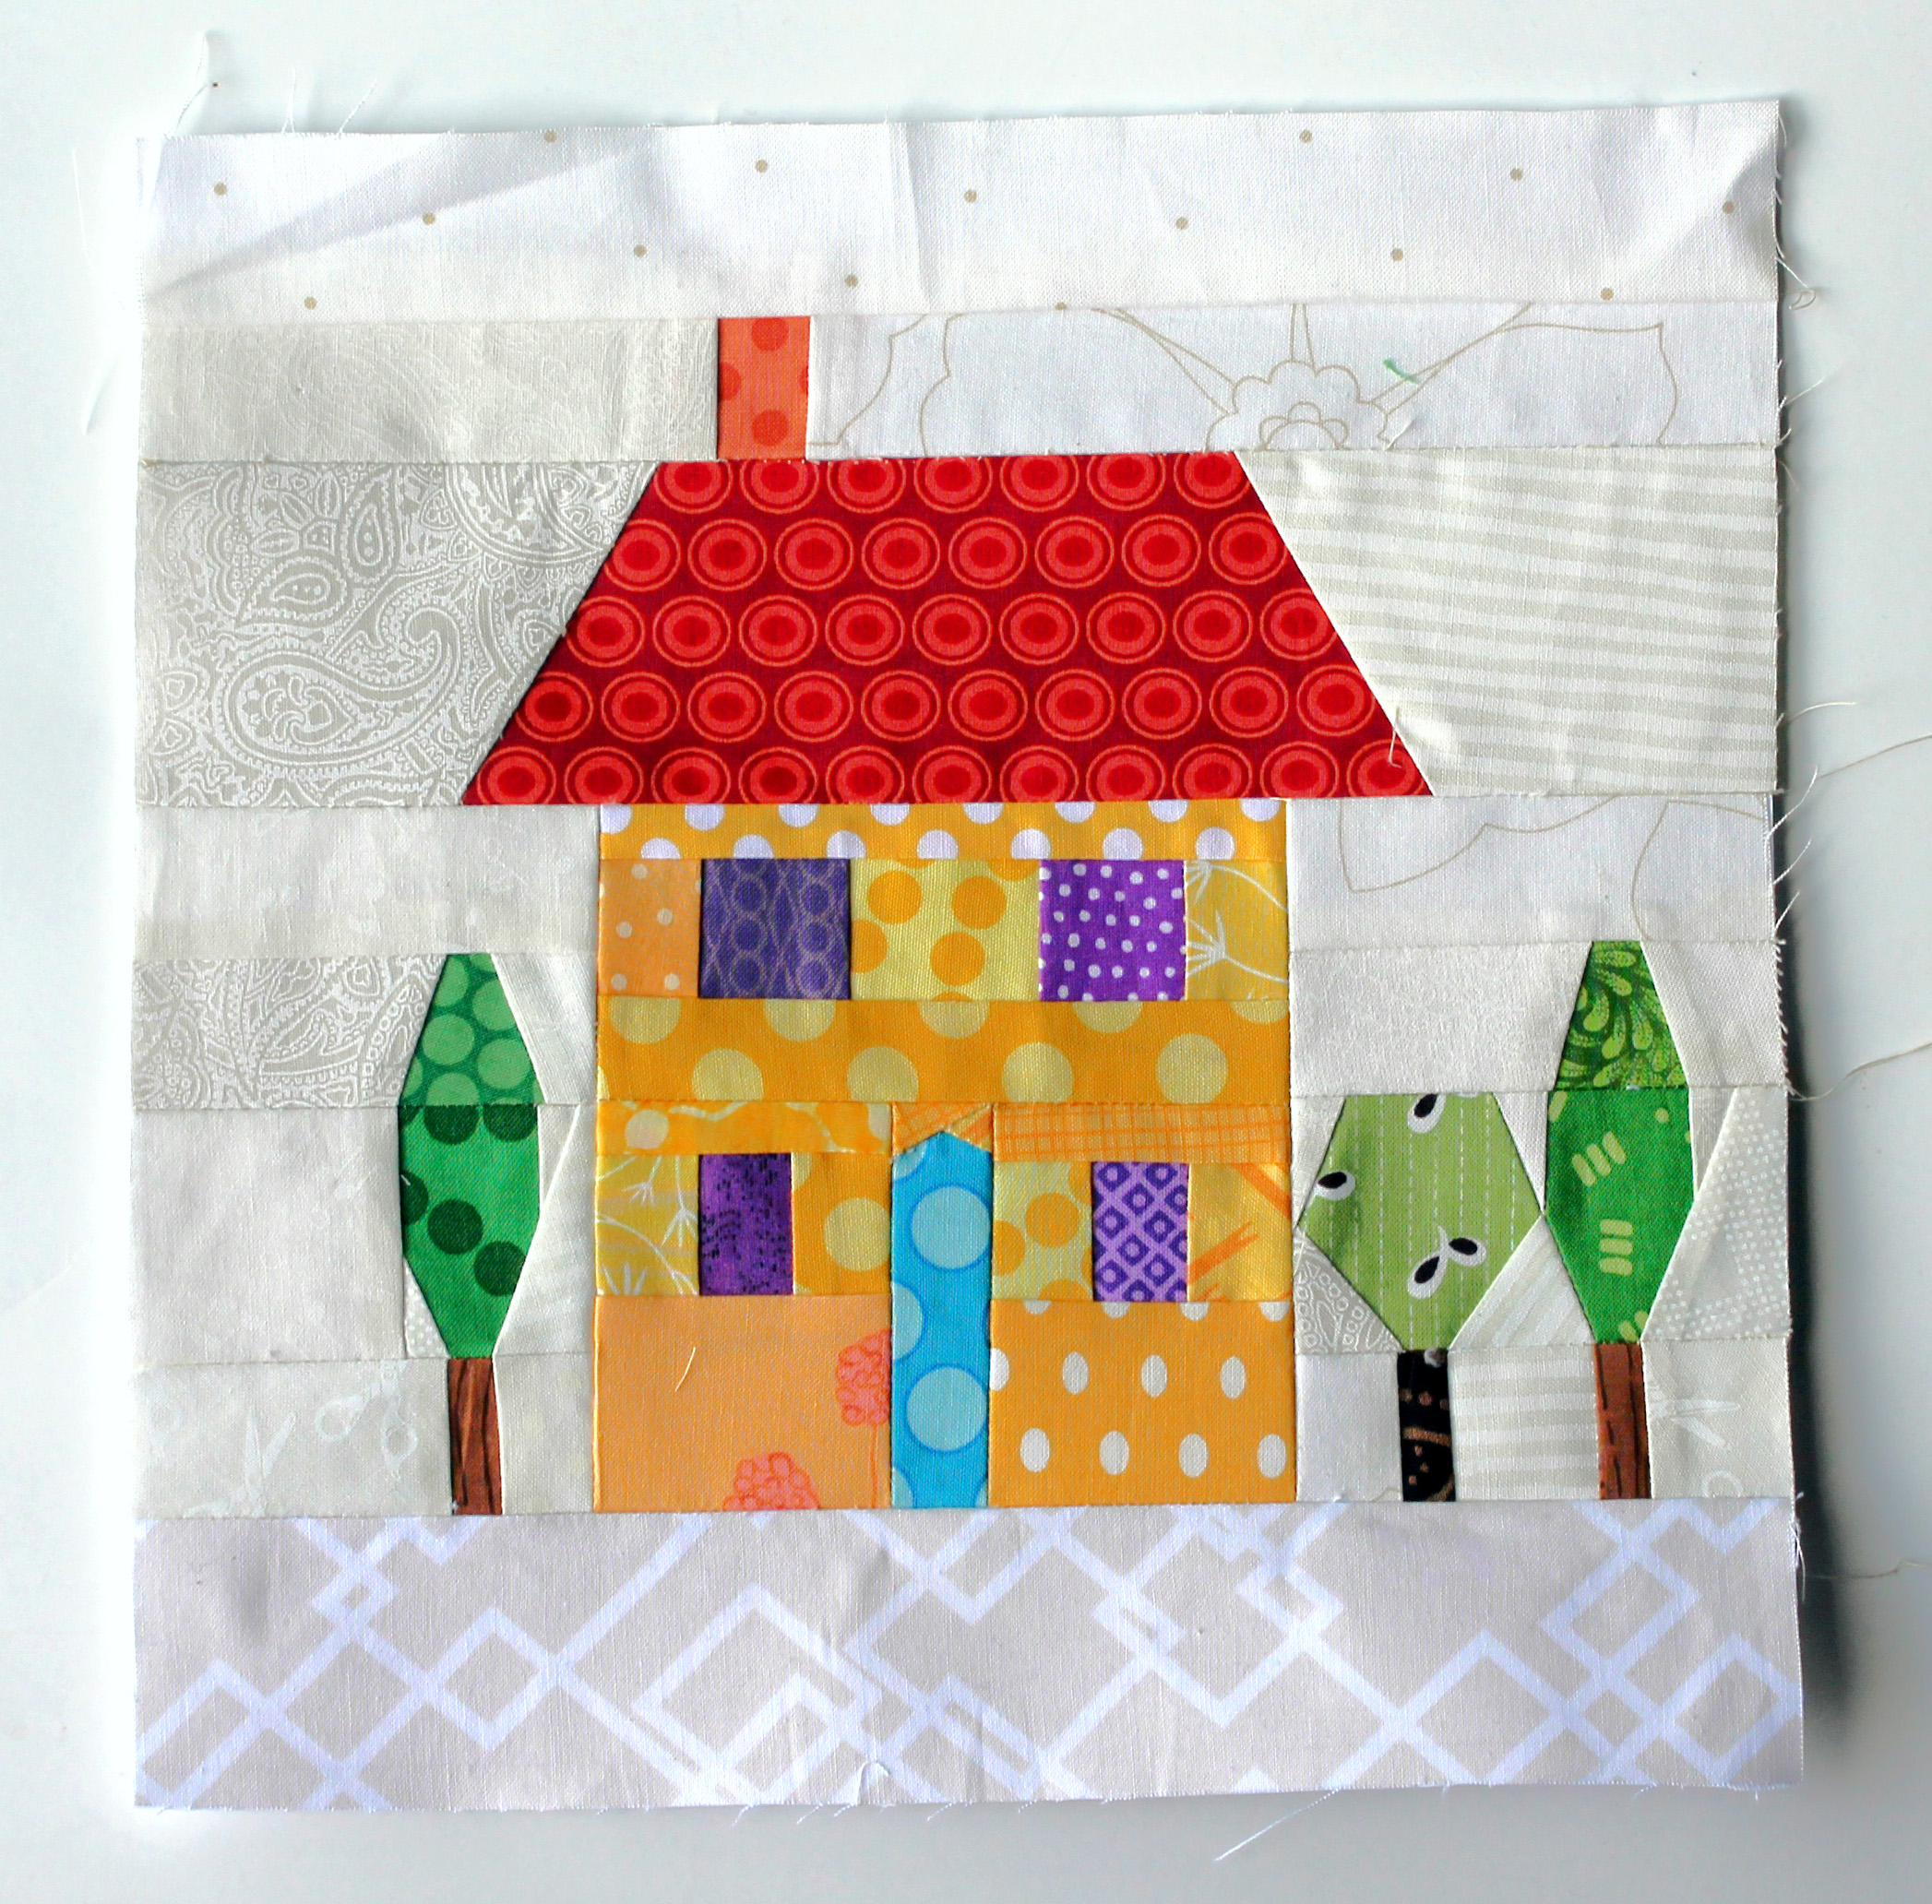 A new paper piecing obsession wombat quilts for House pattern